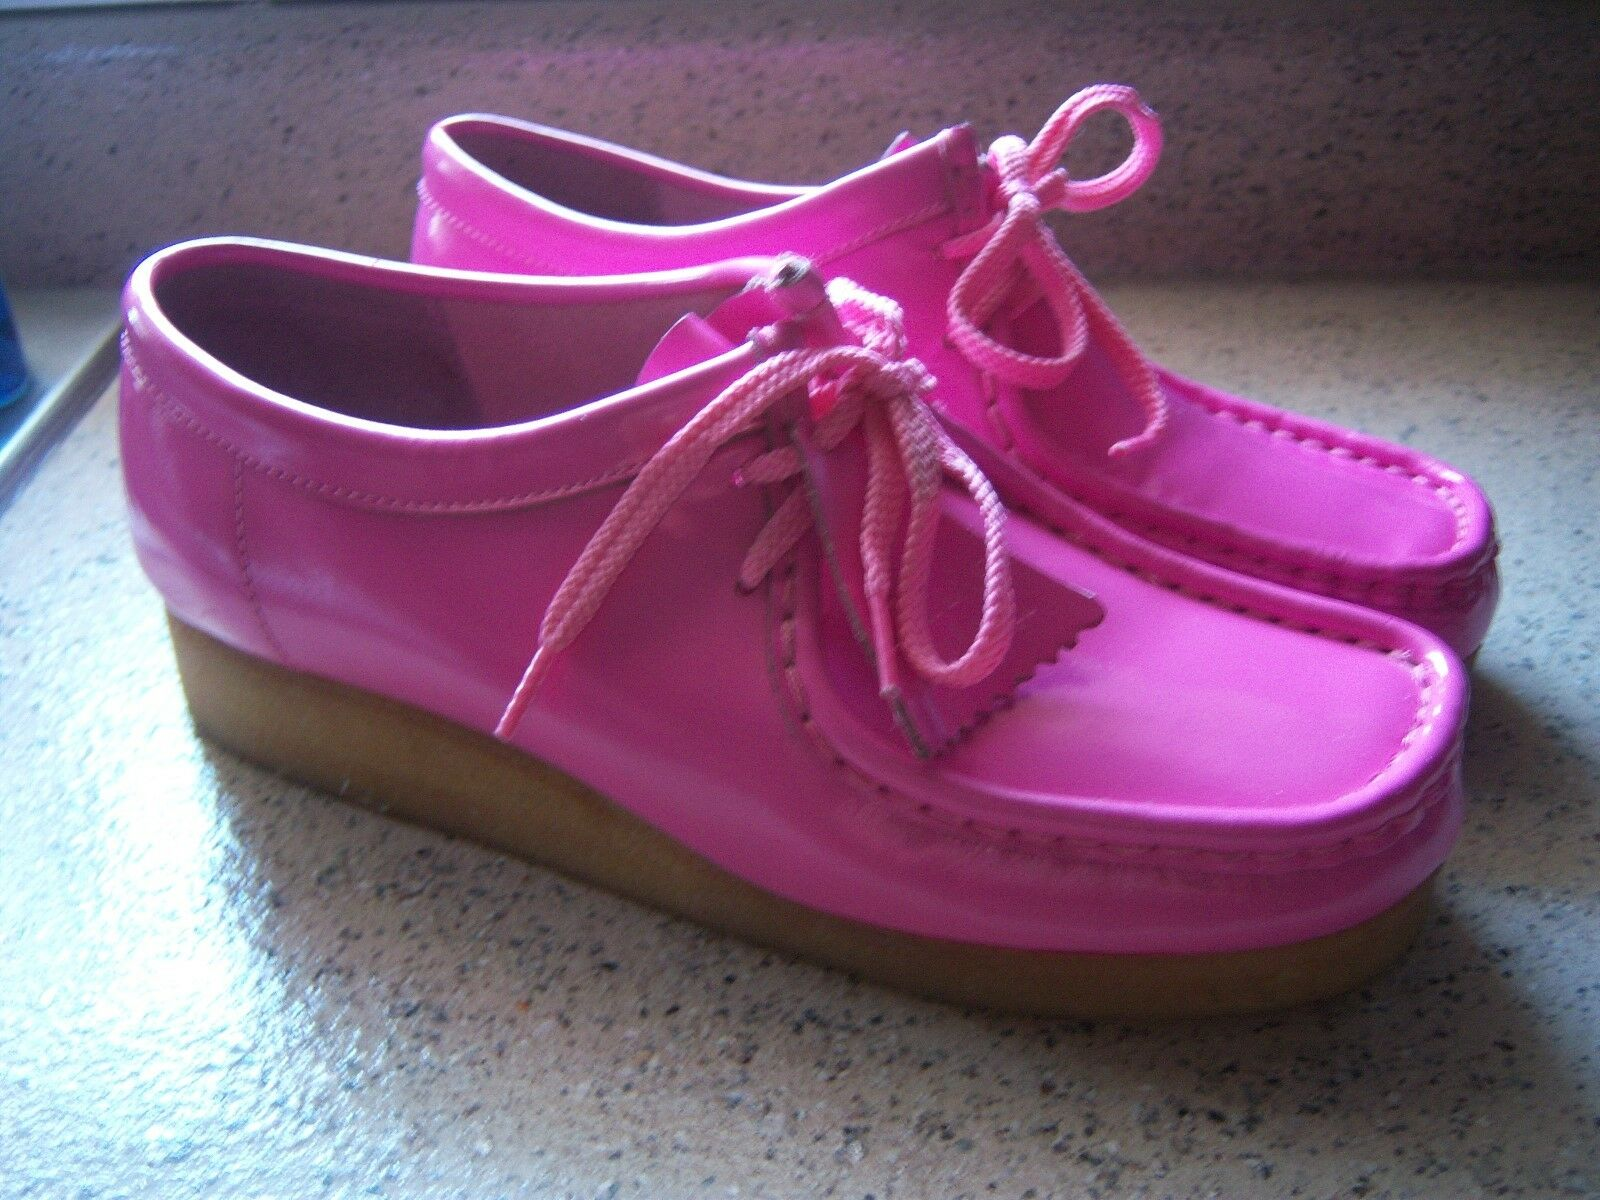 Clarks Wallabees damen 9 Hot Rosa Patent Leather schuhe - RARE